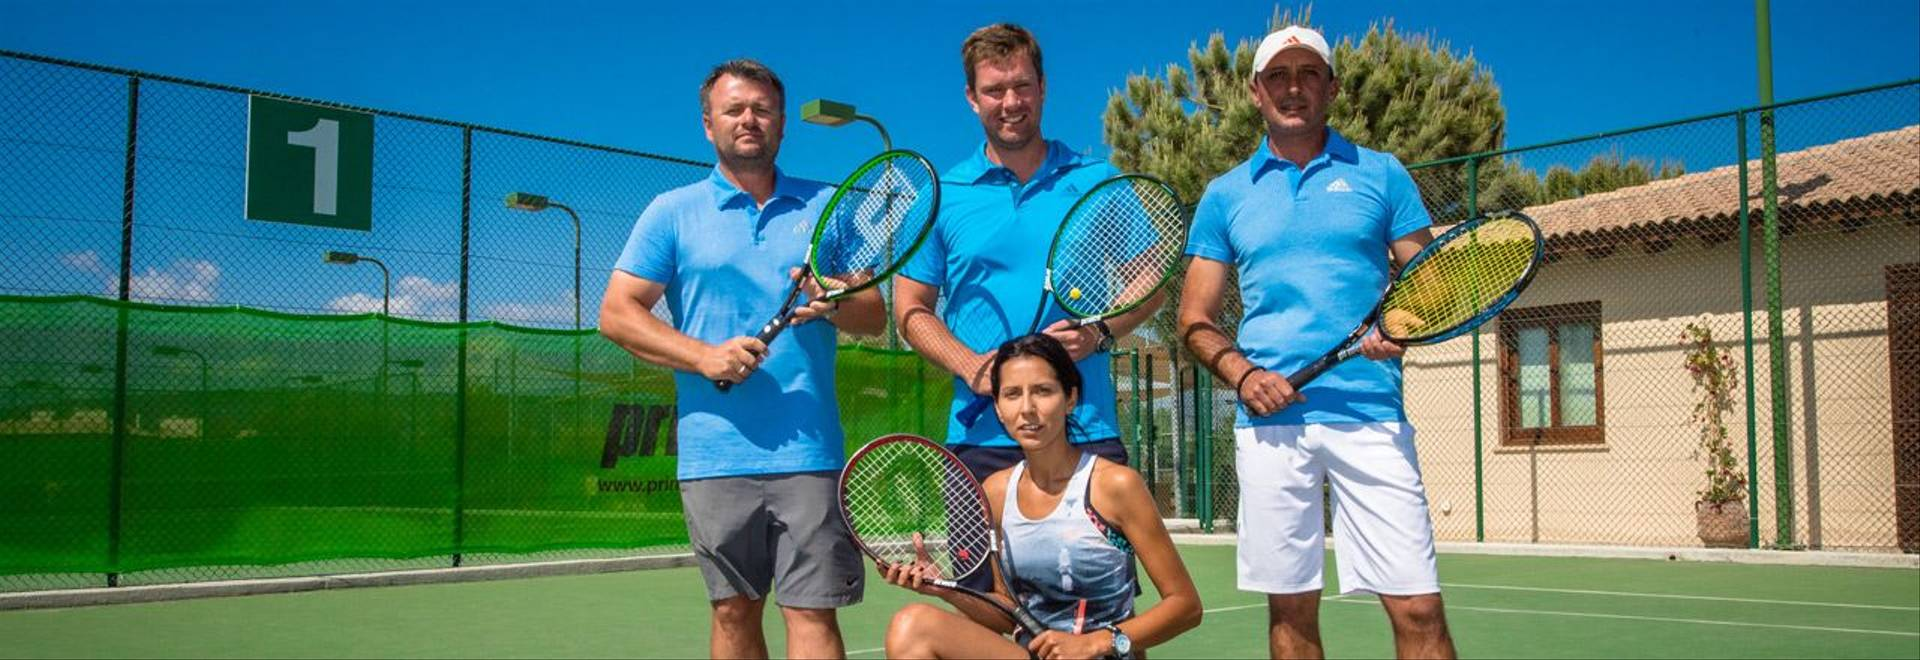 Aphrodite Hills Tennis Coaches